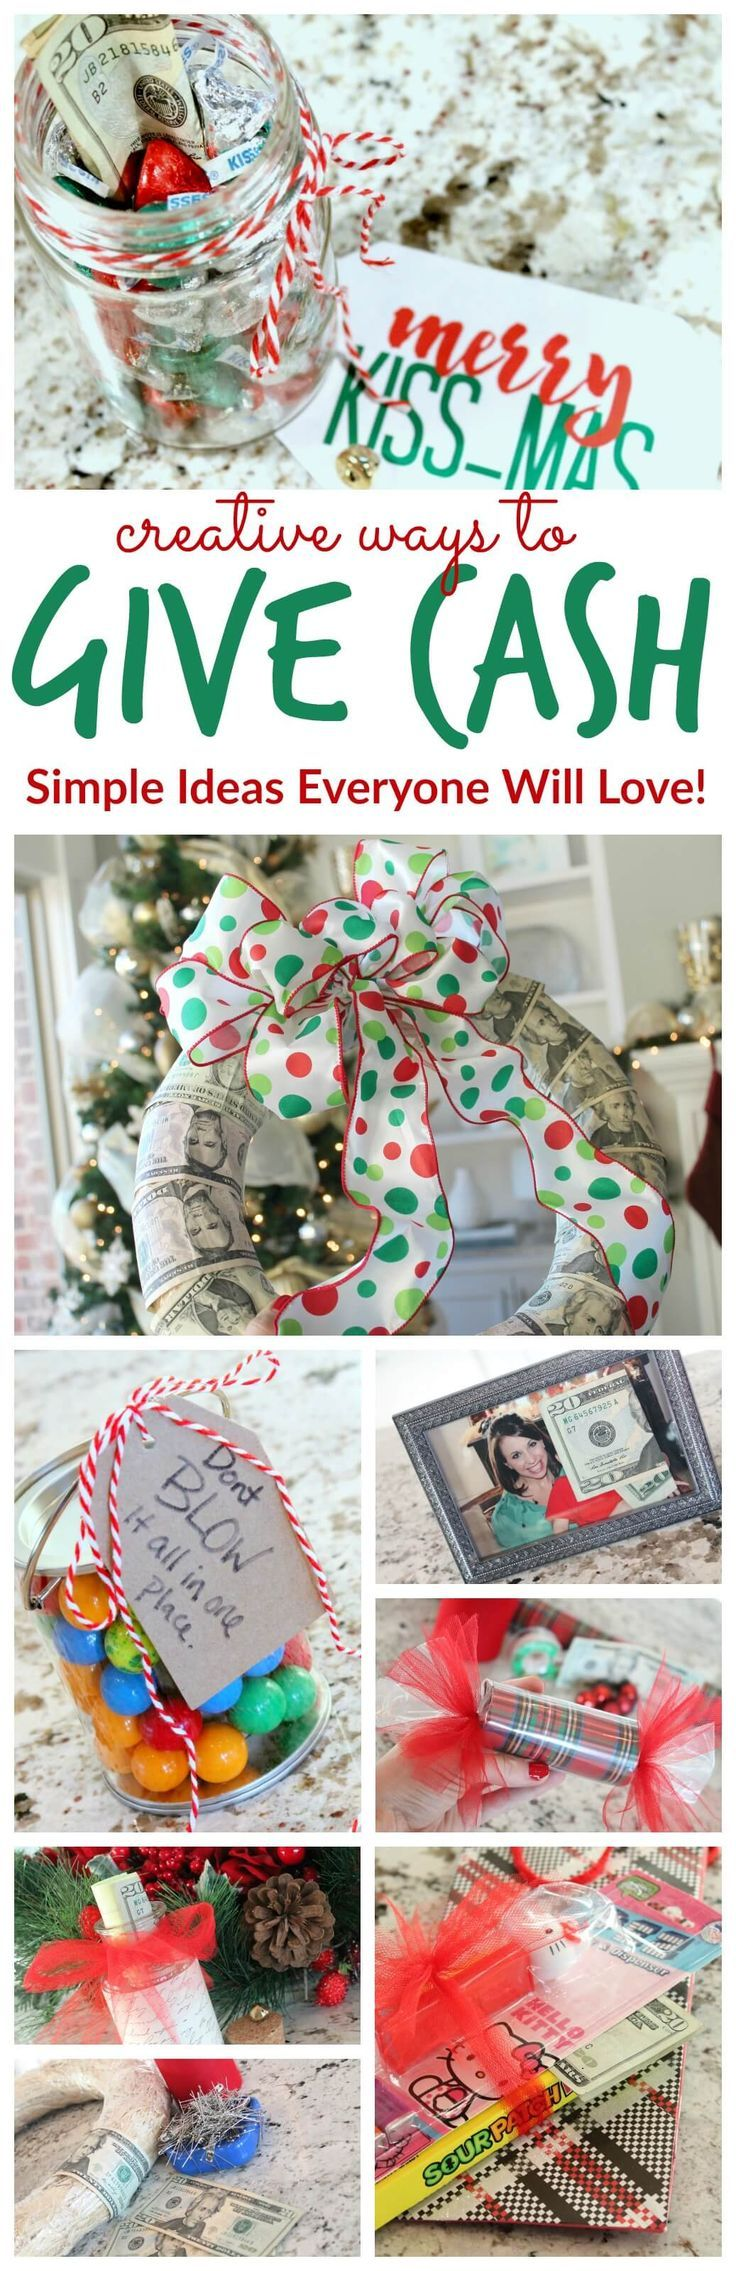 Things for families on christmas!!!?